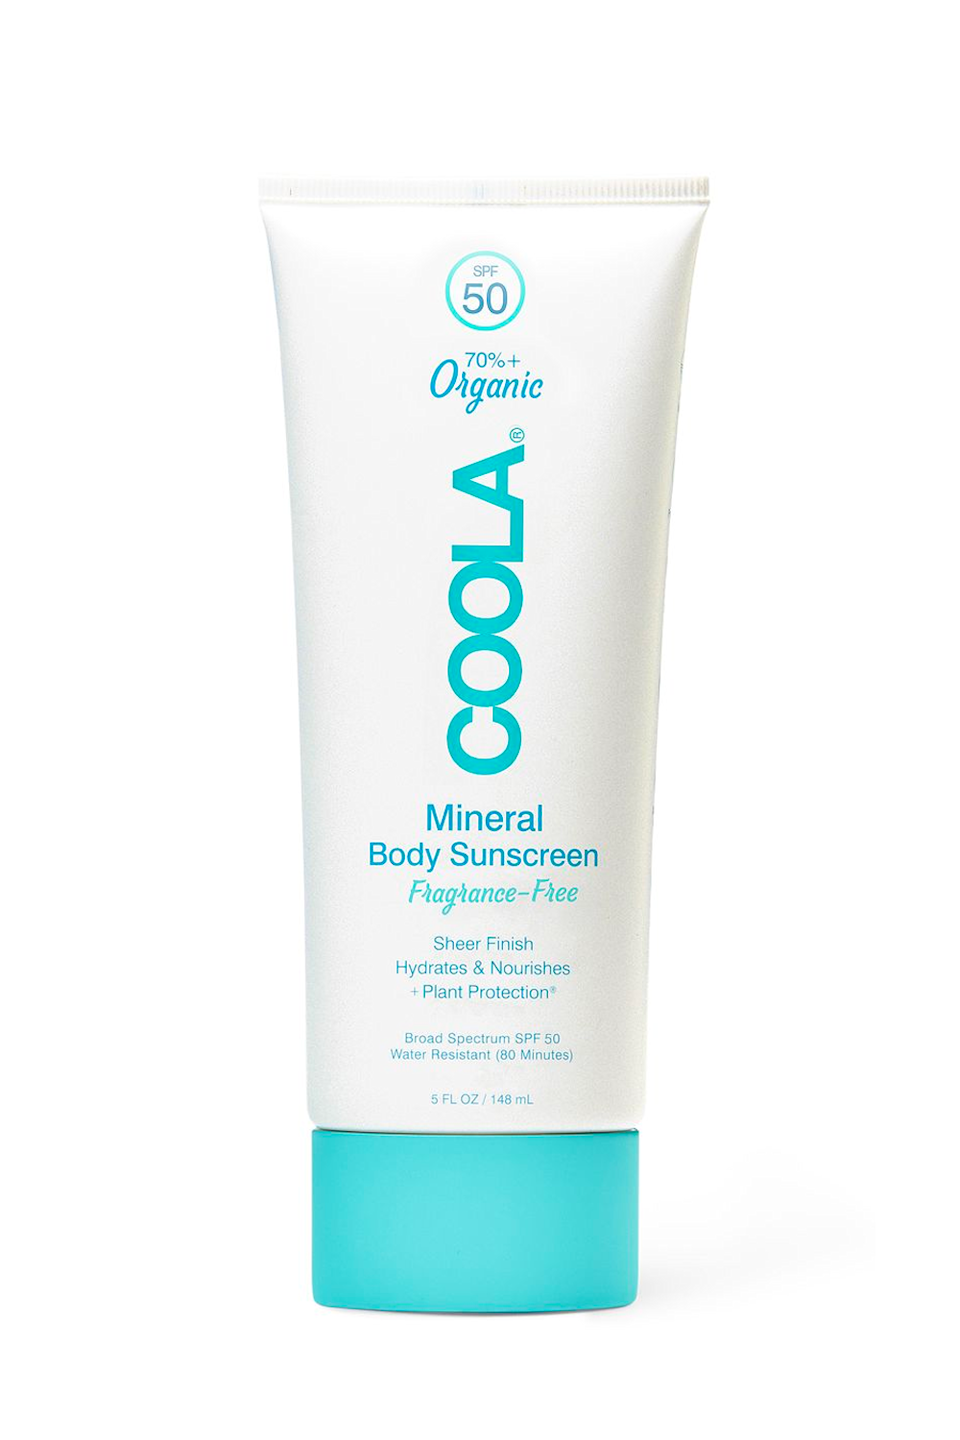 """<p><strong>COOLA</strong></p><p>dermstore.com</p><p><strong>$32.00</strong></p><p><a href=""""https://go.redirectingat.com?id=74968X1596630&url=https%3A%2F%2Fwww.dermstore.com%2Fproduct_Mineral%2BBody%2BSunscreen%2BLotion%2BSPF%2B50%2B%2BFragranceFree_78976.htm&sref=https%3A%2F%2Fwww.cosmopolitan.com%2Fstyle-beauty%2Fbeauty%2Fg35993297%2Fpregnancy-safe-sunscreen%2F"""" rel=""""nofollow noopener"""" target=""""_blank"""" data-ylk=""""slk:Shop Now"""" class=""""link rapid-noclick-resp"""">Shop Now</a></p><p>This chemical-free SPF is here to change your opinion of body sunscreen. Unlike those chalky, thick formulas of your youth, this pregnancy-safe option is <strong>oil-free</strong><strong>,<a href=""""https://www.cosmopolitan.com/style-beauty/beauty/a34024982/fragrance-free-skincare-routine-essay/"""" rel=""""nofollow noopener"""" target=""""_blank"""" data-ylk=""""slk:fragrance-free"""" class=""""link rapid-noclick-resp""""> fragrance-free</a>, and super easy to blend</strong>. It's got a blend of antioxidants and plant stem cells to keep your skin feeling (and lookin') healthy, so don't be afraid to really slather it on.</p>"""